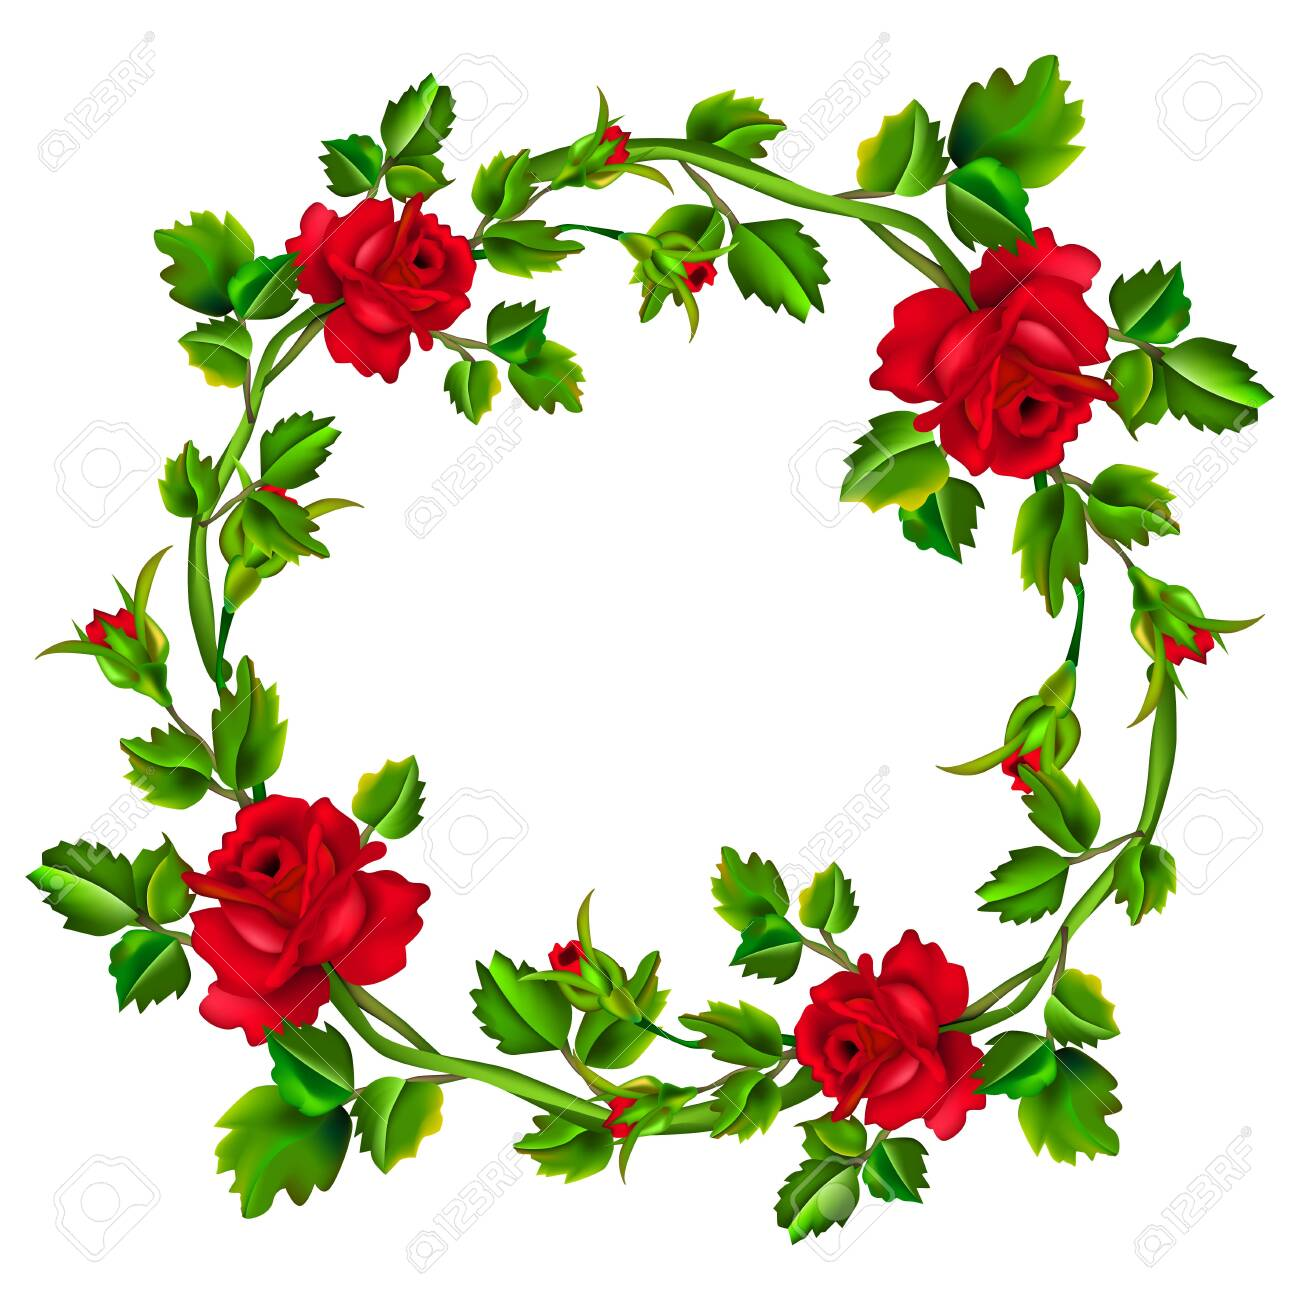 Flower frame isolated on white background. Red rose wreath. Roses with leaves in circle with place for the text or image. Mesh. - 130021095